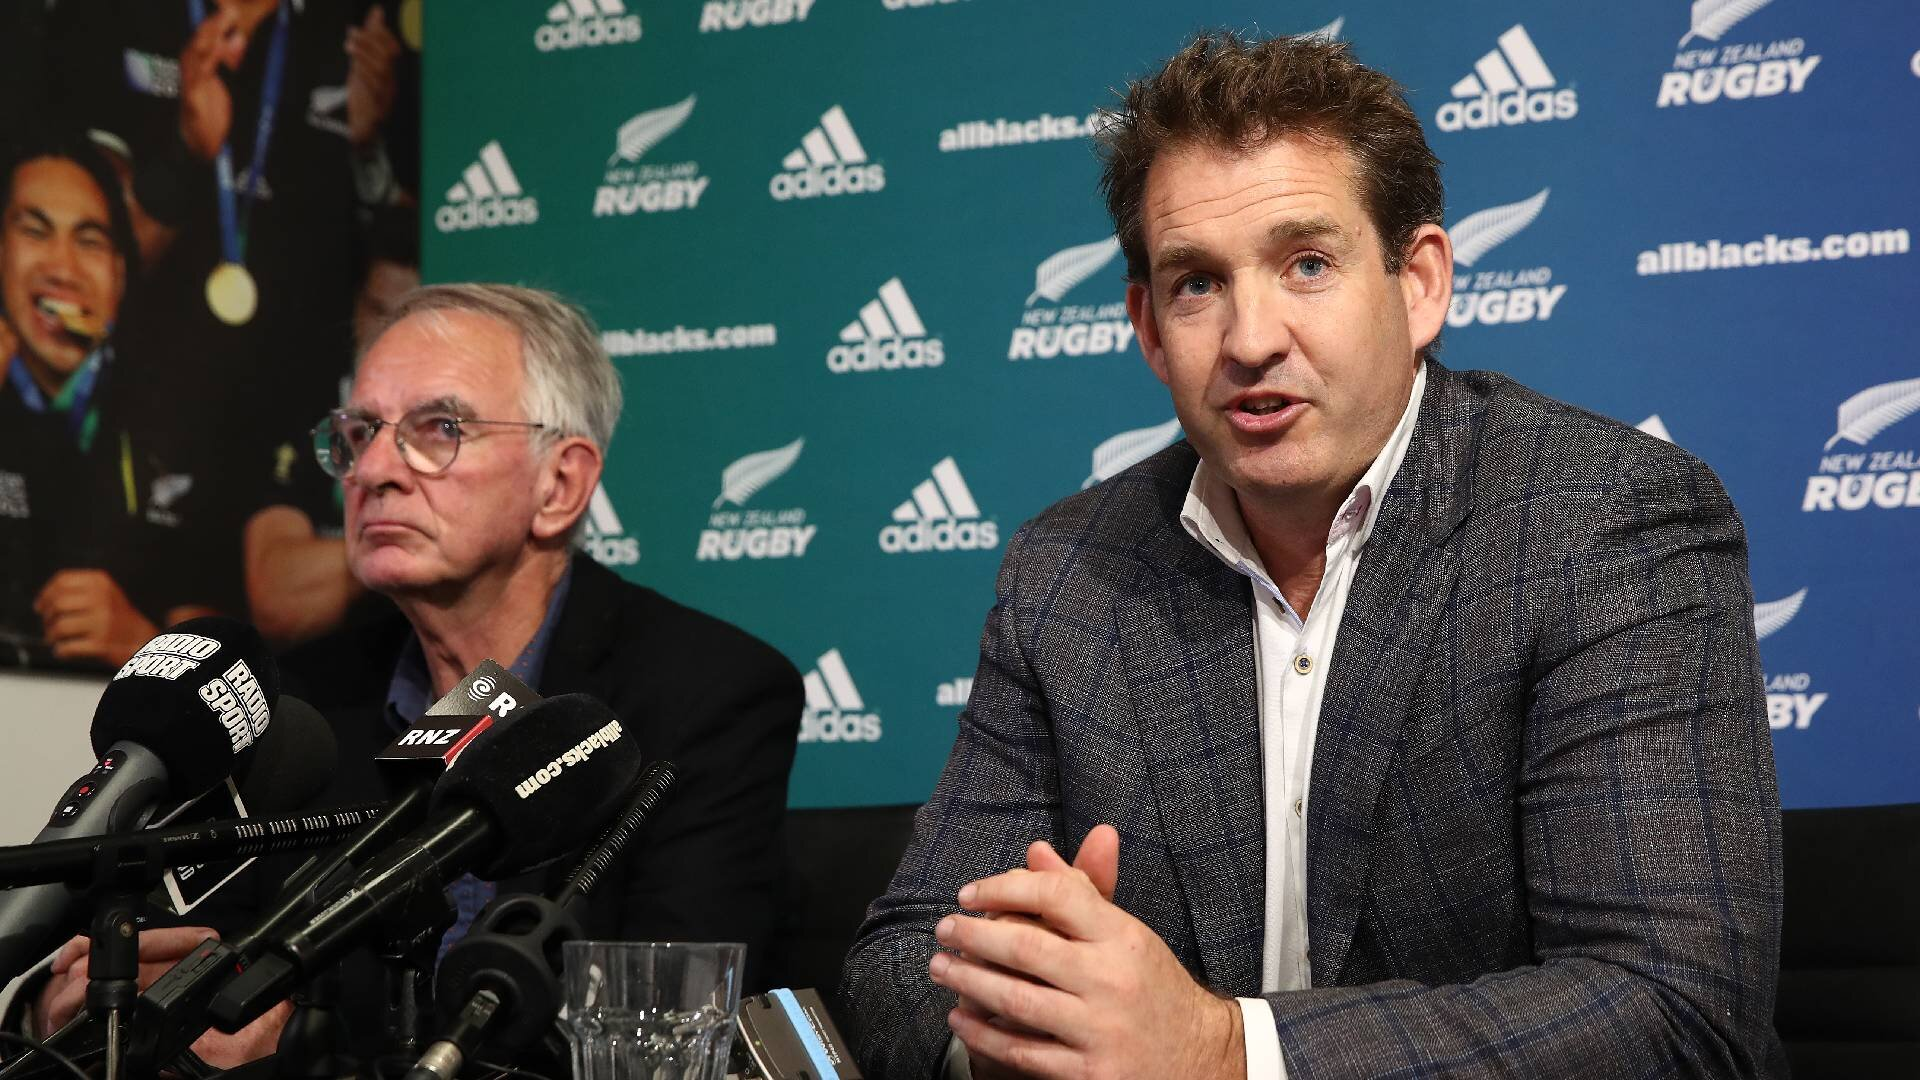 New Zealand Rugby's multi-billion dollar move that could see them leave World Rugby